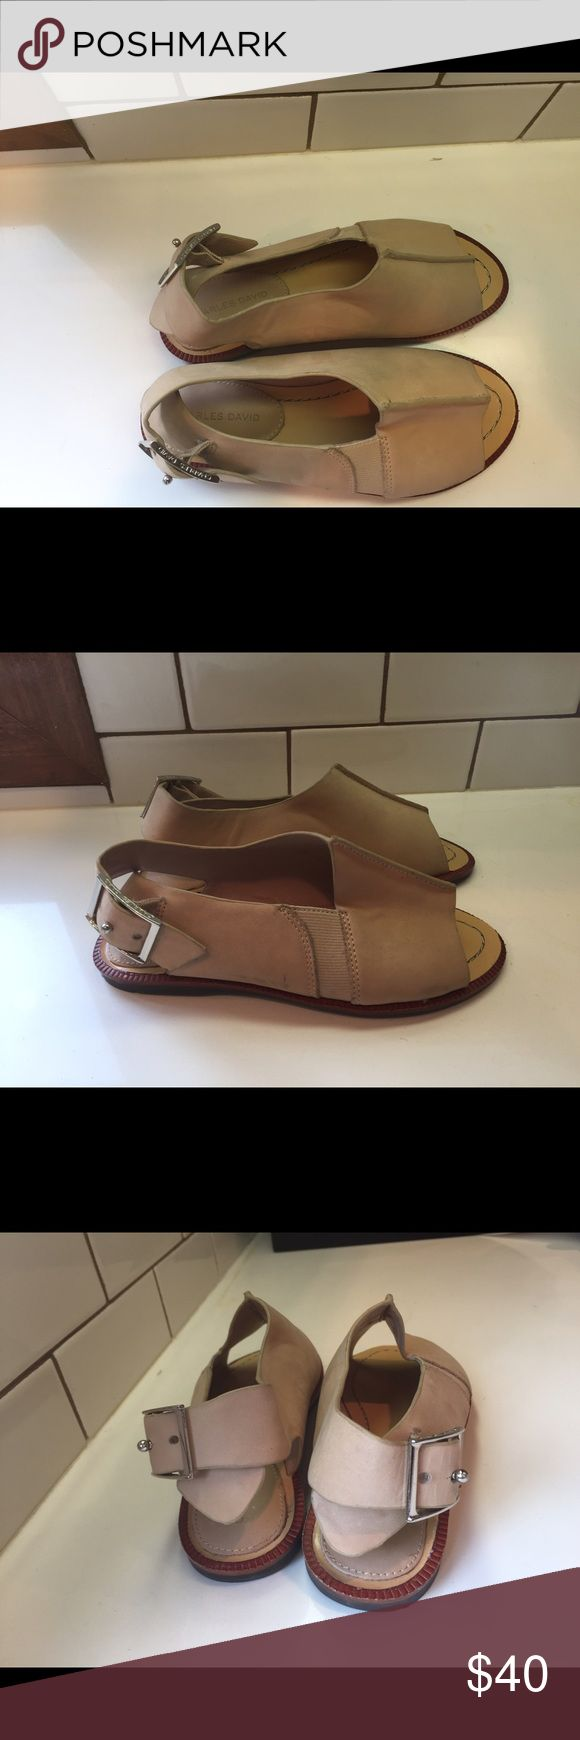 Charles David peep toe flat sandals New without tags. Never been worn. Size 5. Light tan leather. Buckle on back. Charles David Shoes Sandals